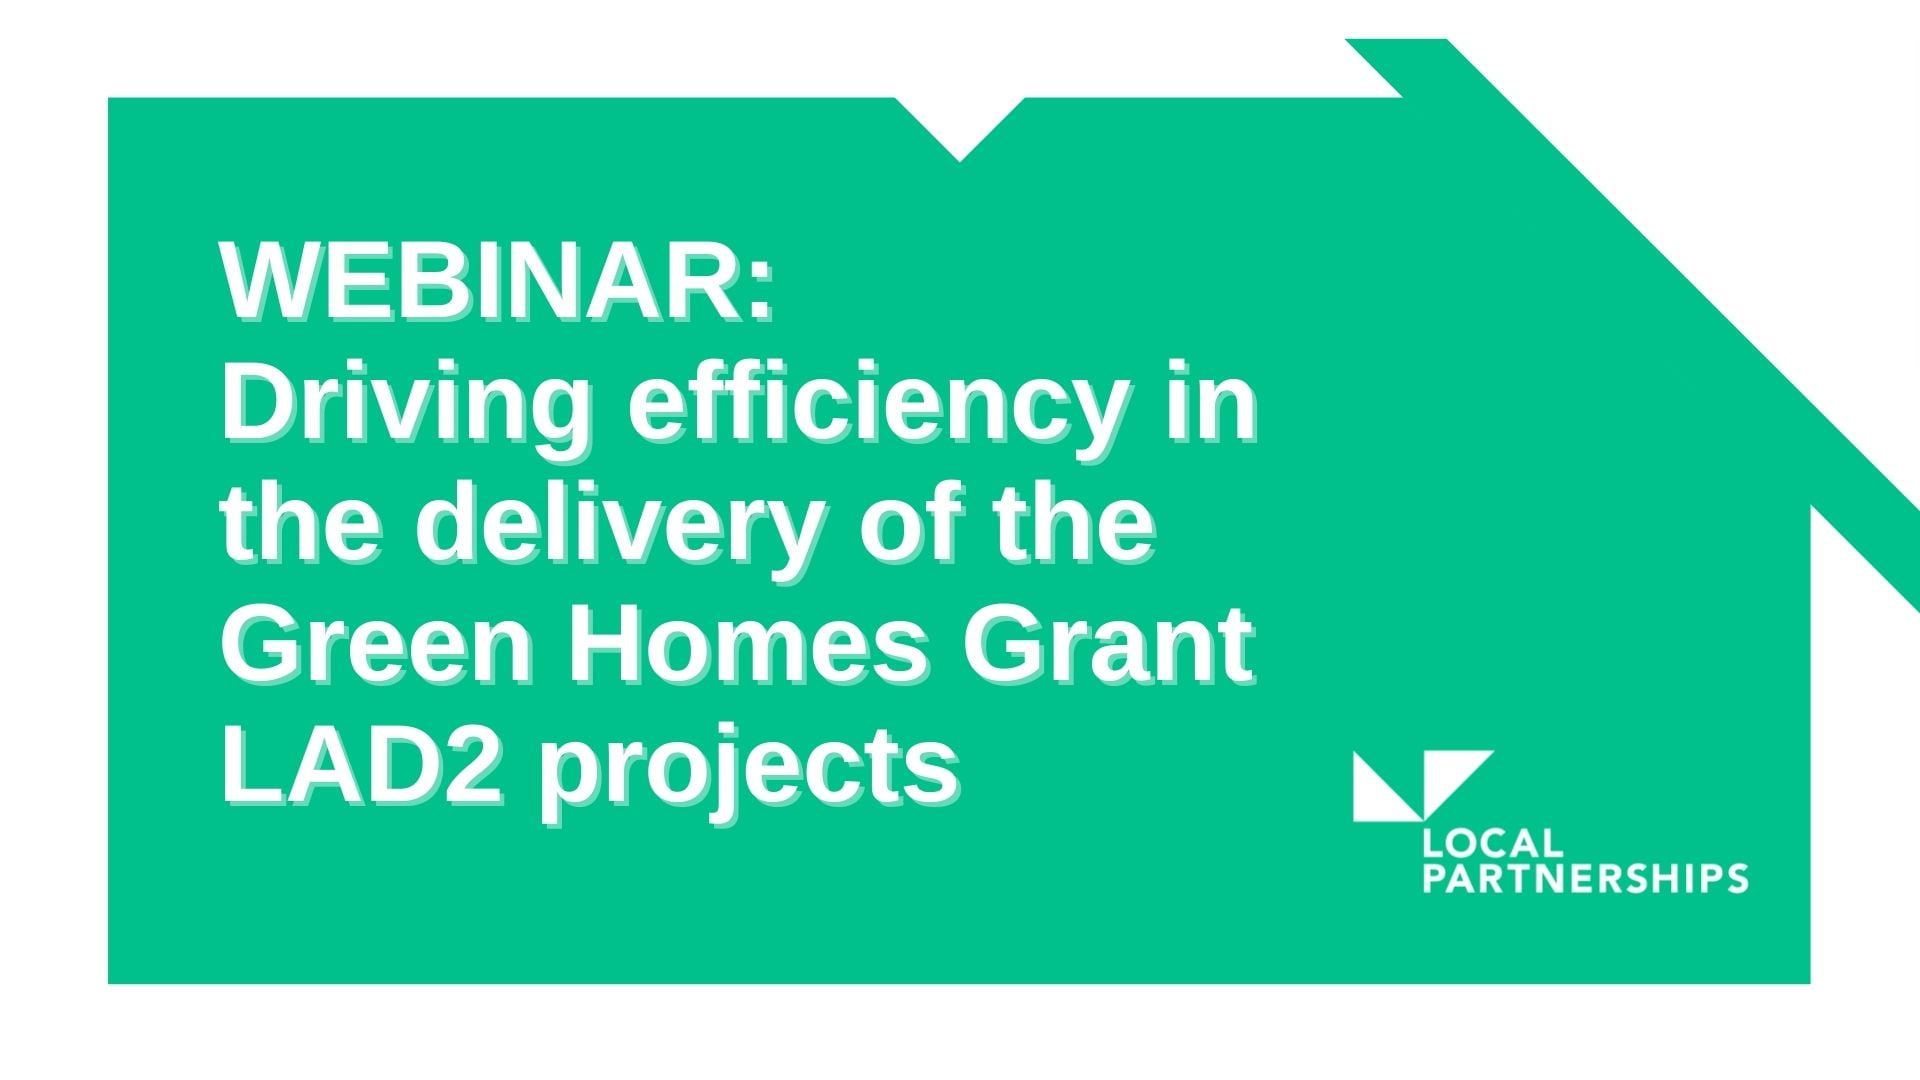 Webinar: Driving efficiency in the delivery of Green Homes Grant LAD2 projects, Tuesday 4 May 2021